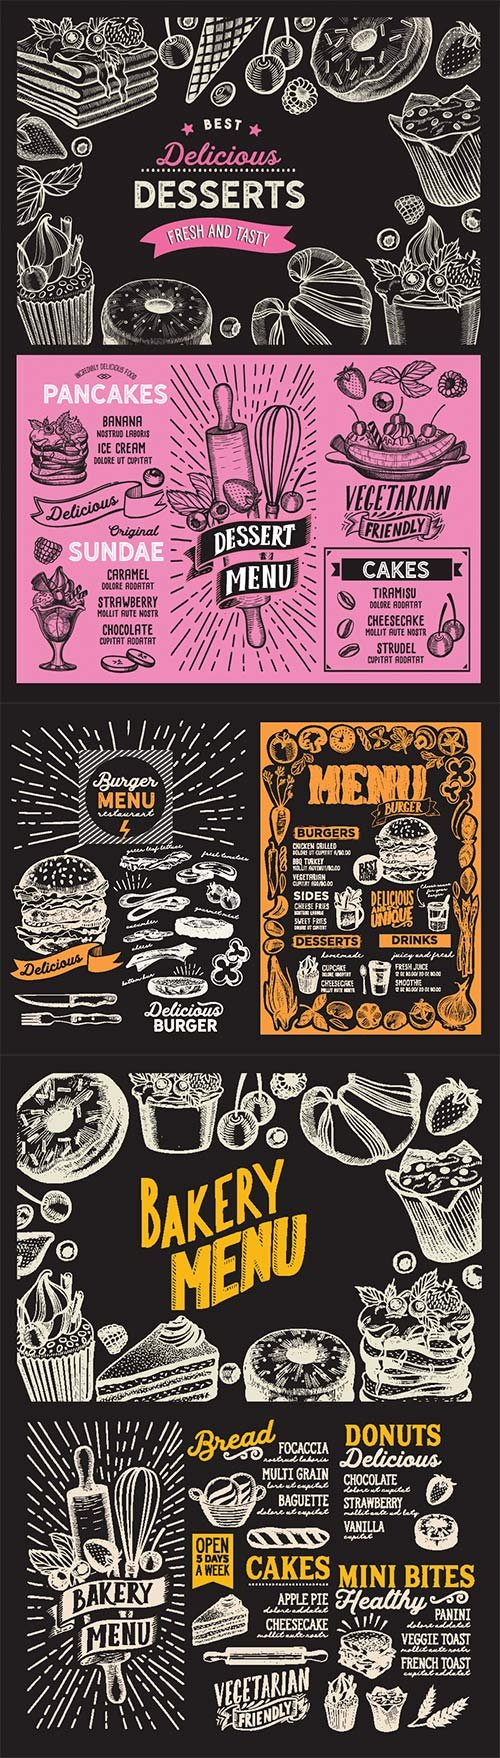 Menu food template for restaurant with doodle hand-drawn graphic